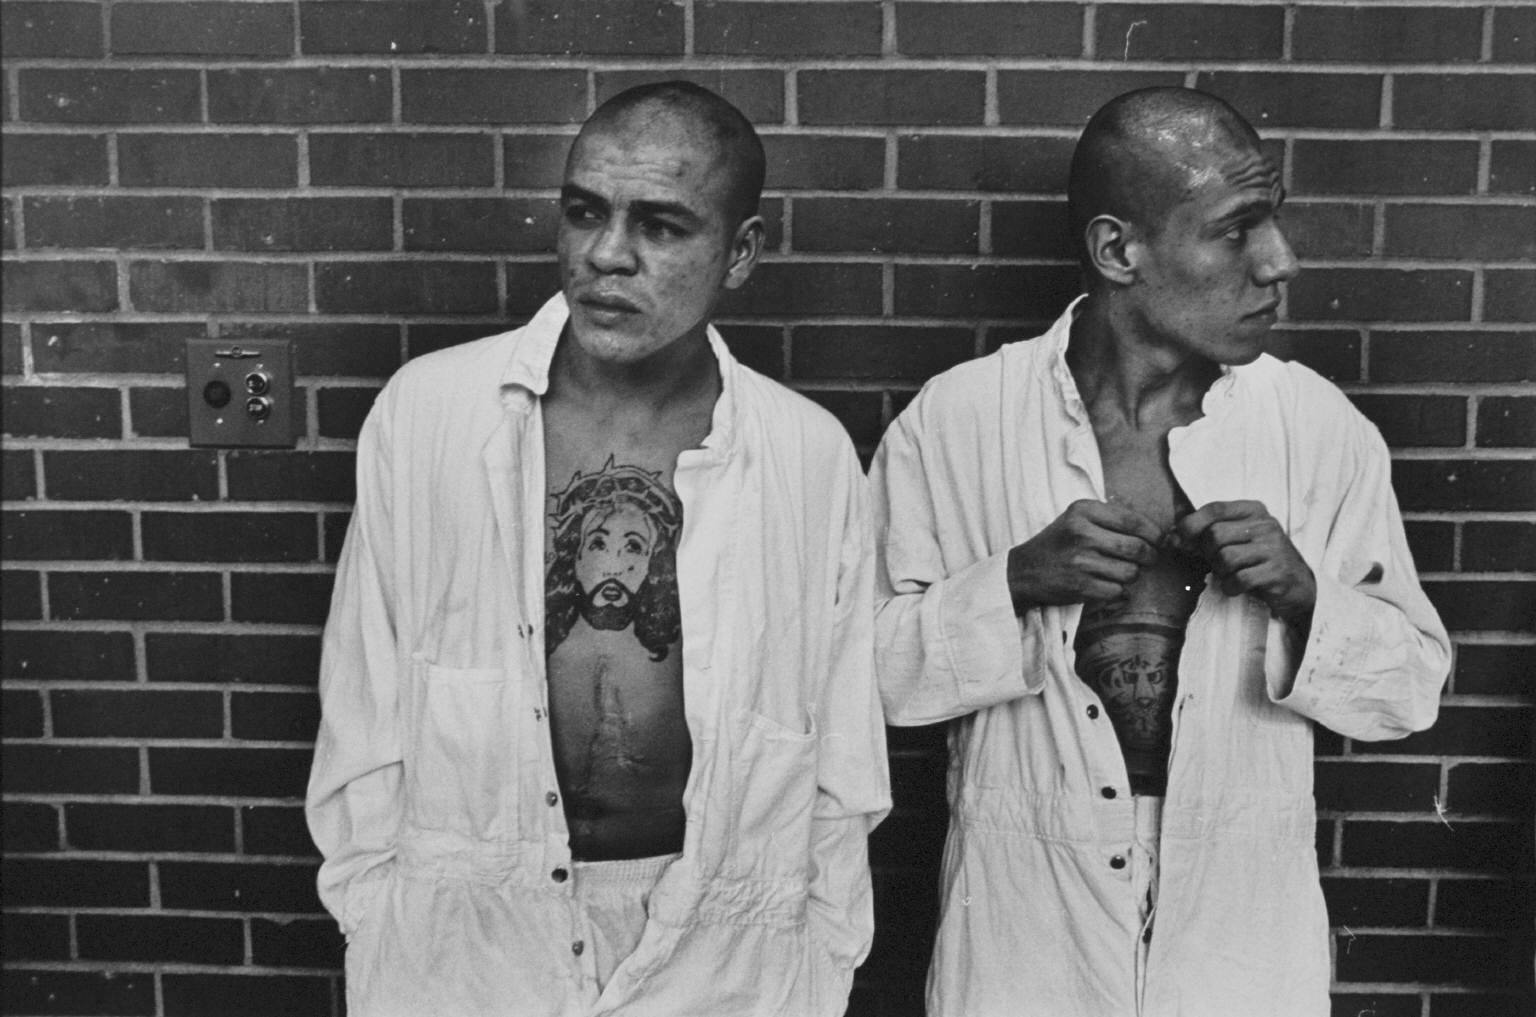 """""""New arrivals from Corpus Christi"""" from Conversations with the Dead by Danny Lyon  --circa 1967-68."""